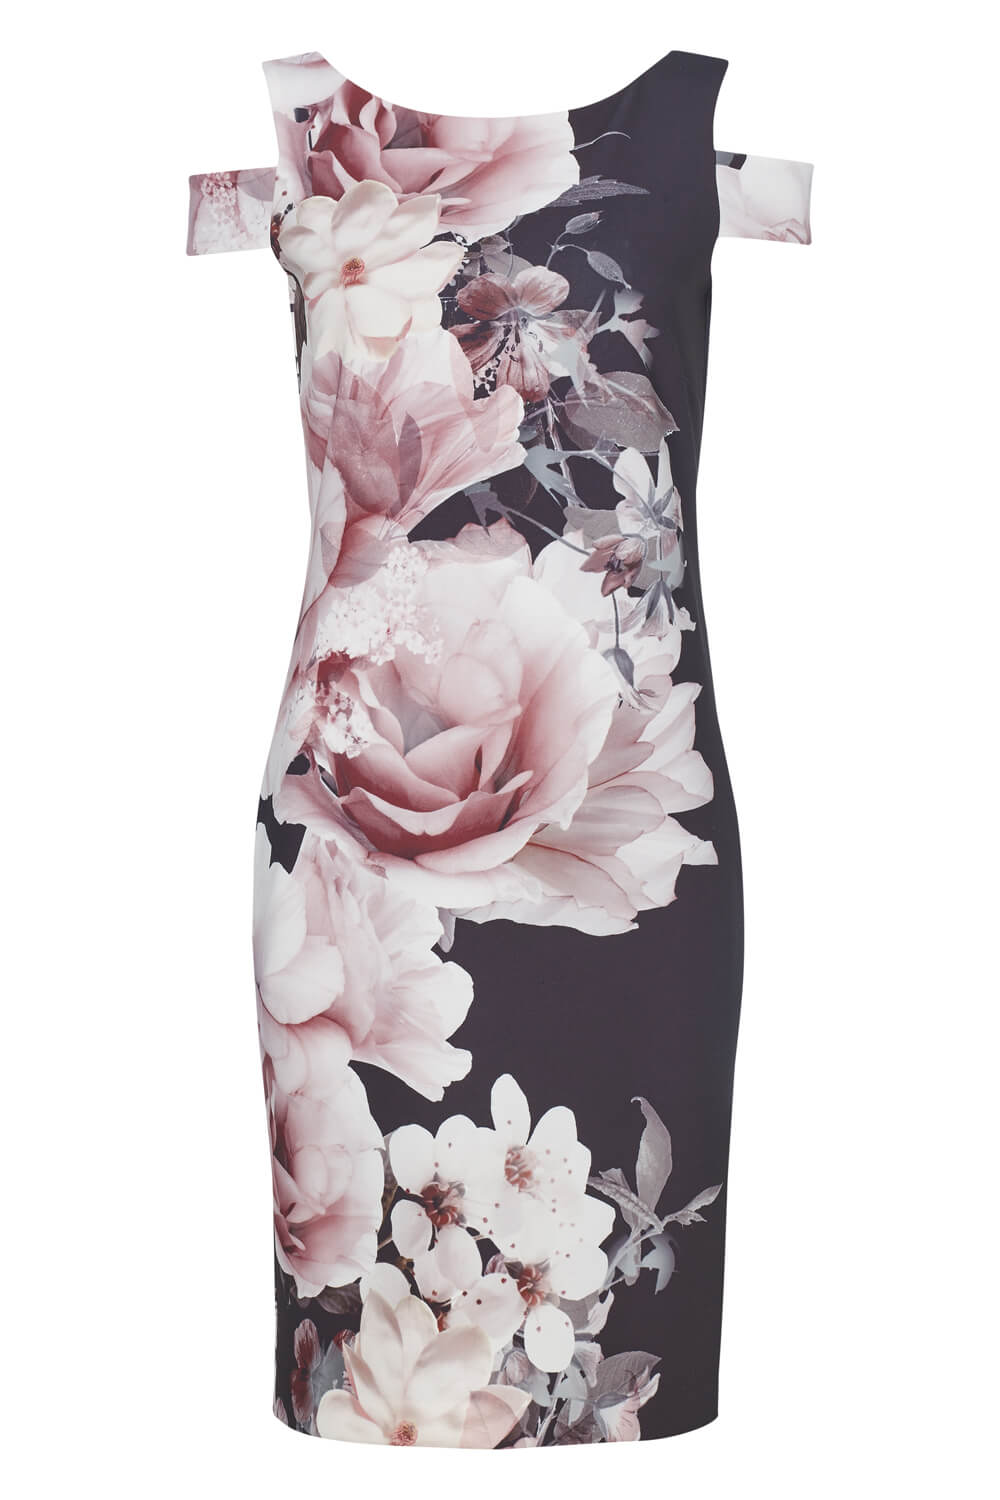 Roman-Originals-Women-039-s-Black-Floral-Print-Scuba-Dress-Sizes-10-20 thumbnail 12